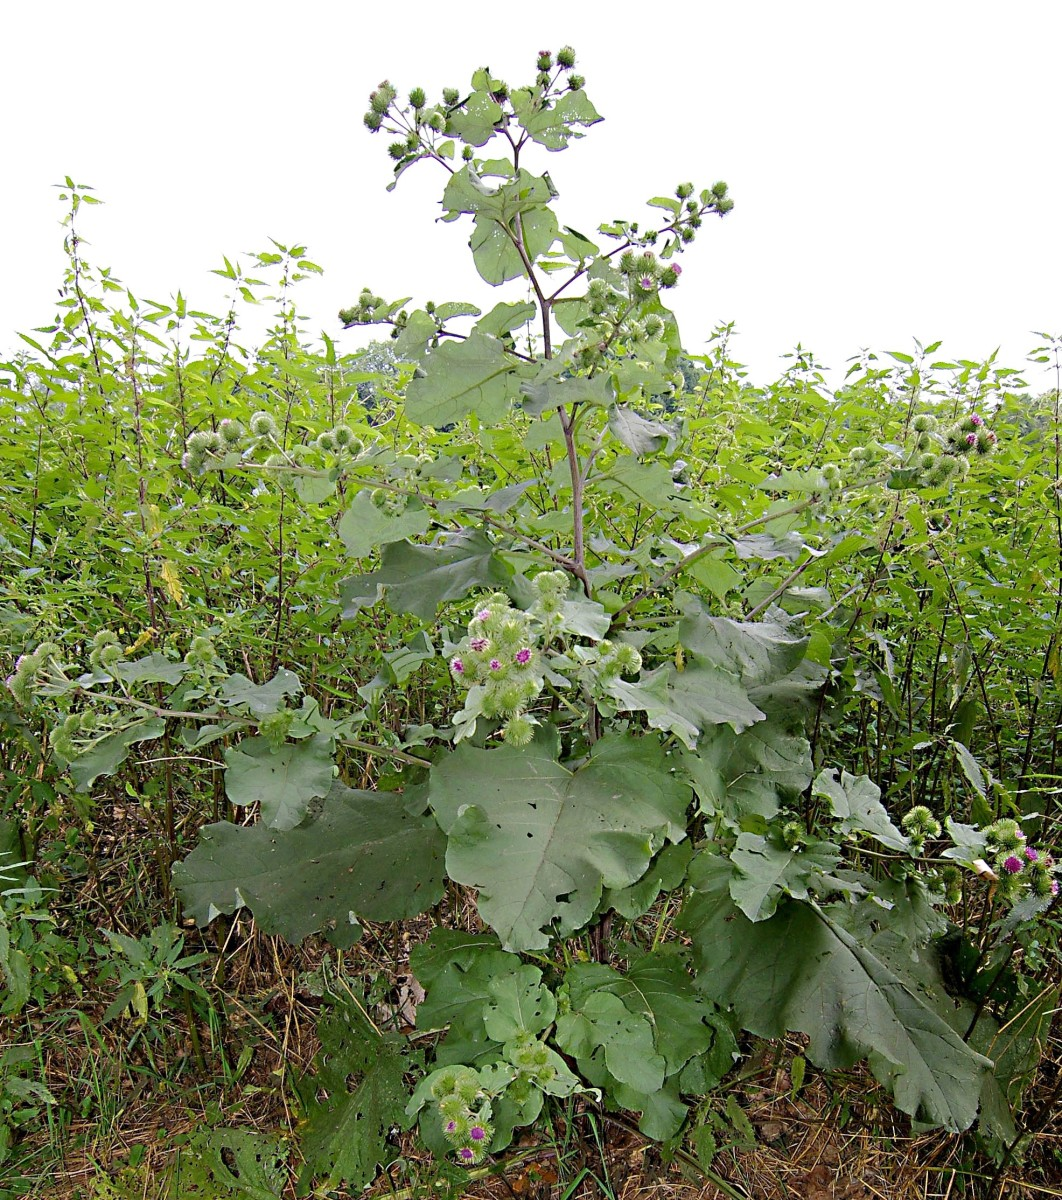 The root of the greater burdock contains inulin.